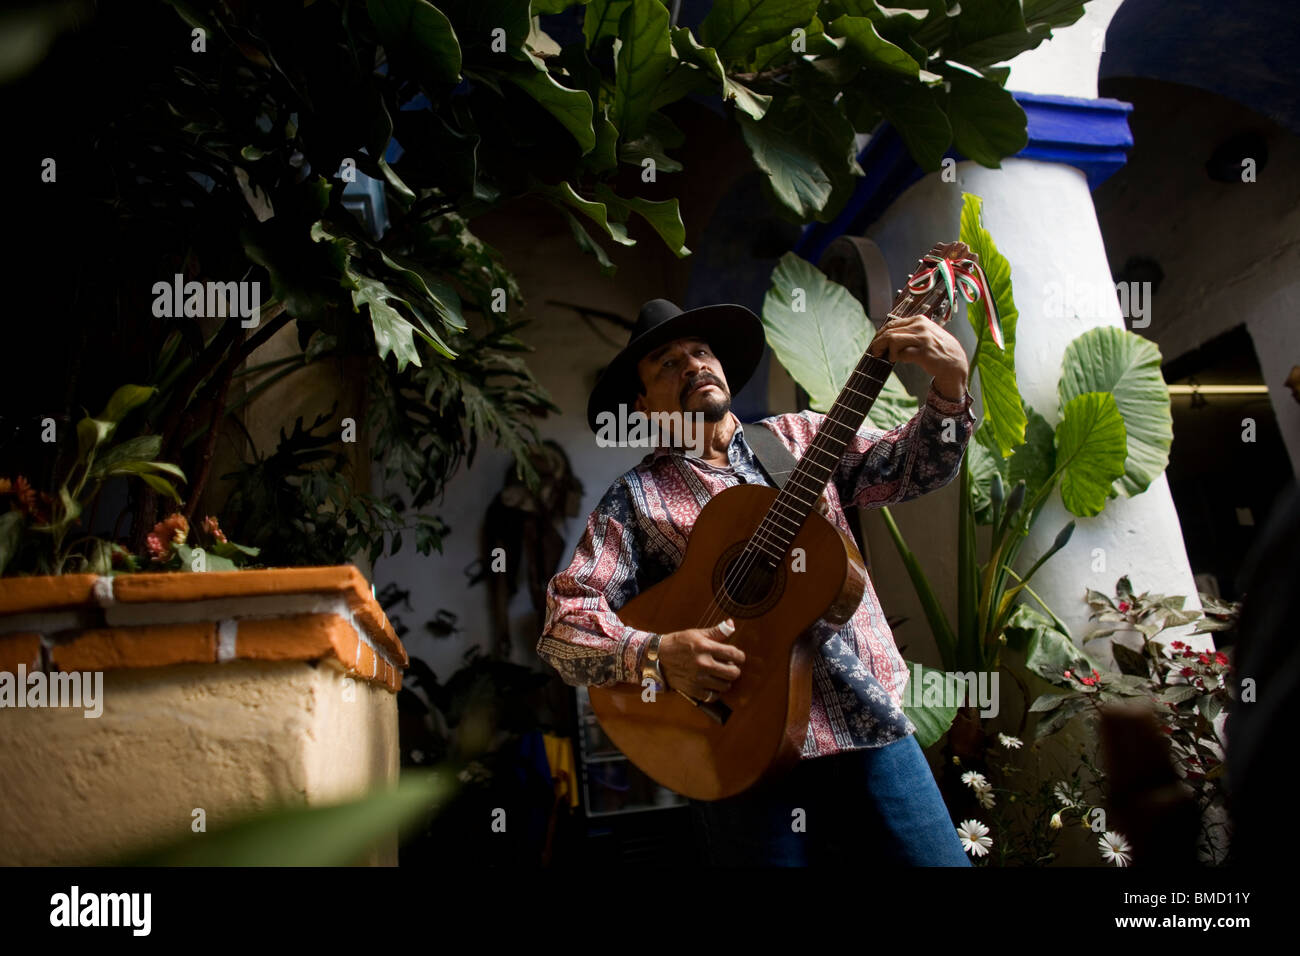 Pablo Barba performs for tourists in the Emiliano's restaurant in Tlayacapan, Mexico, February 5, 2008. Photo/Chico Stock Photo